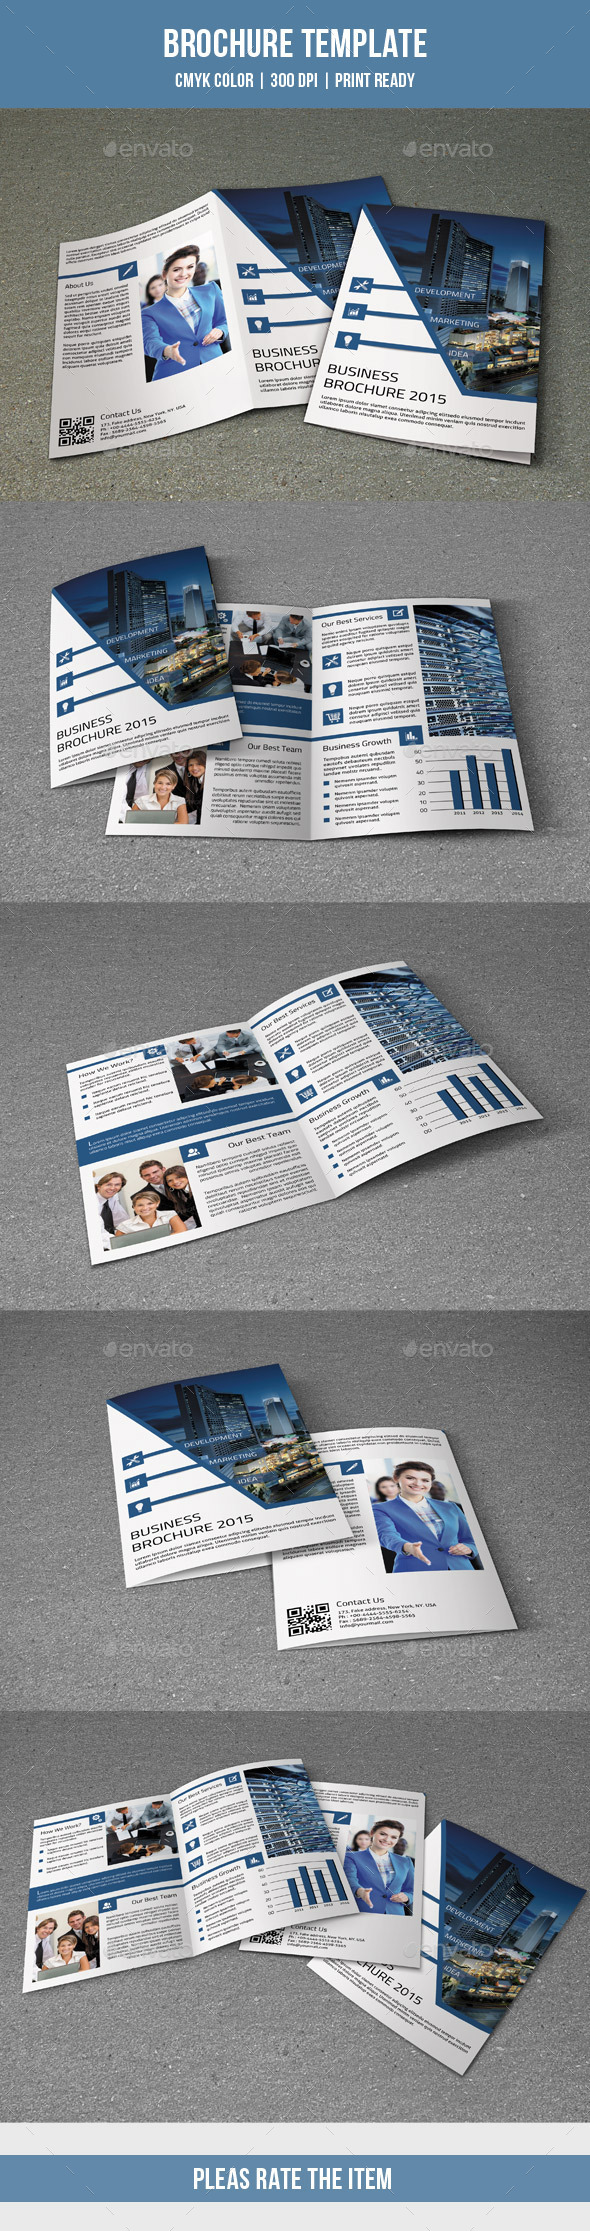 4 Pages Corporate Brochure-V195 - Corporate Brochures